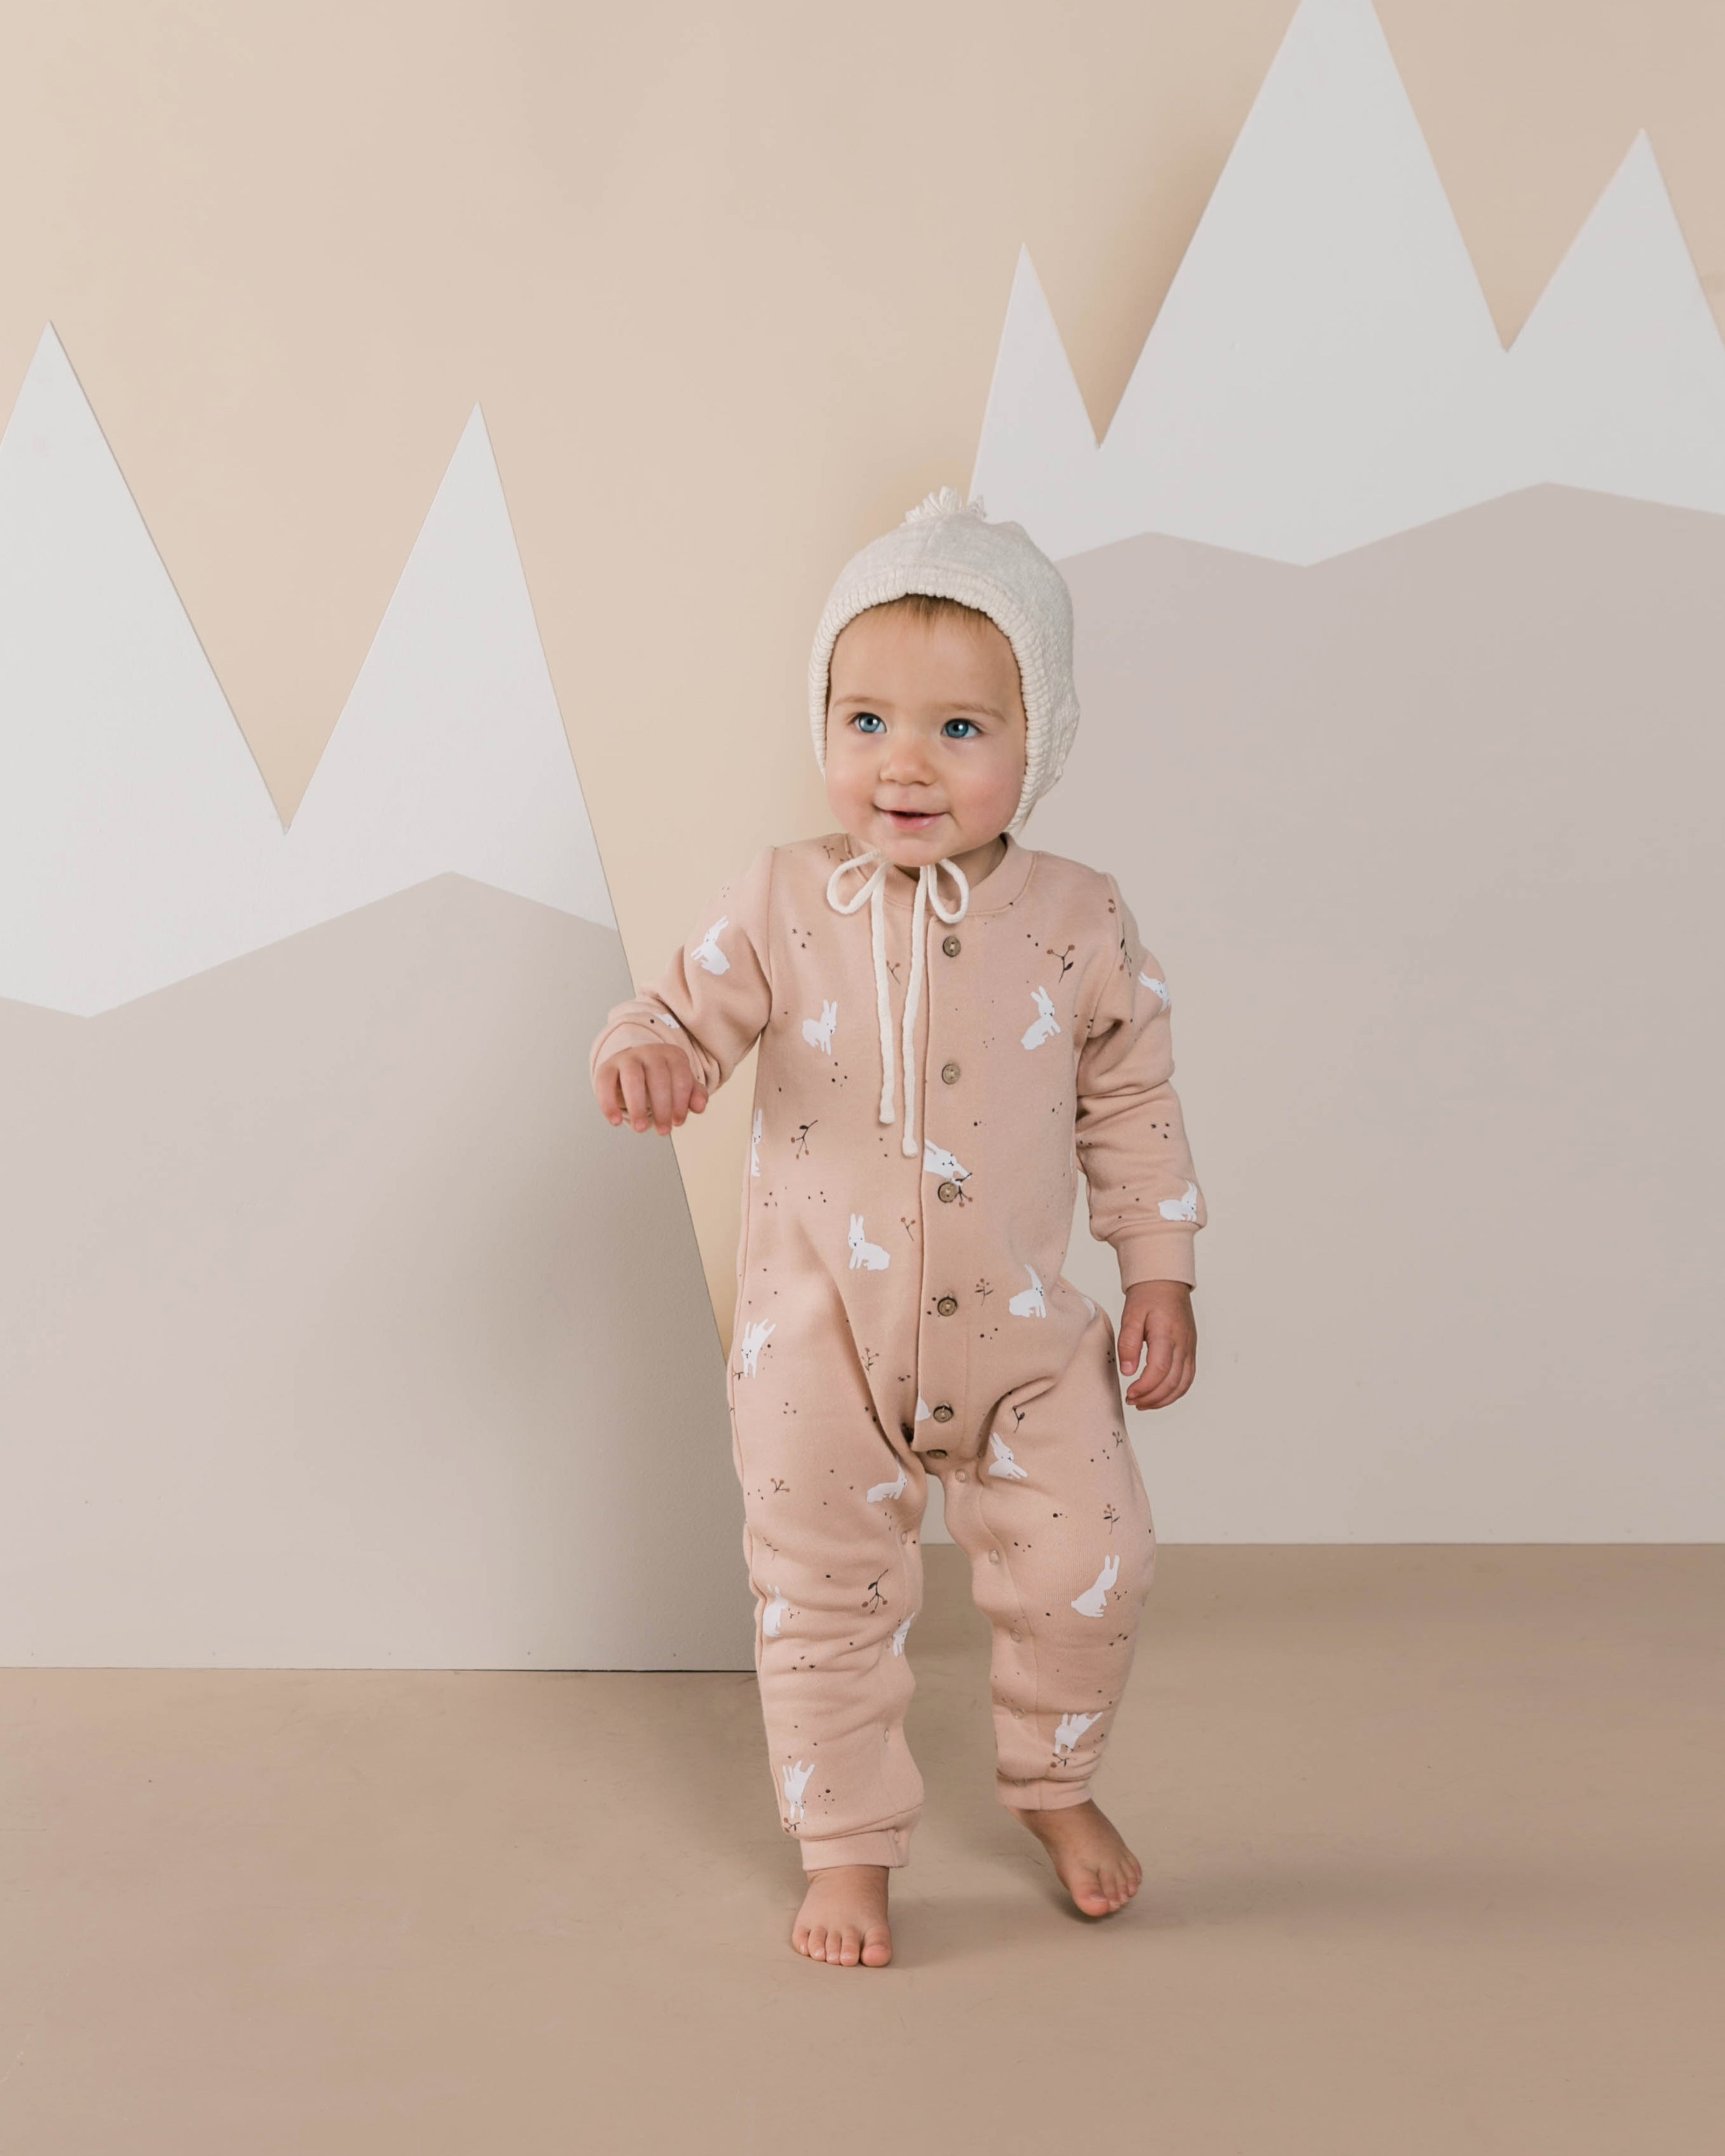 Trendy collection of baby fashion by Rylee and Cru at Bonjour Baby Baskets